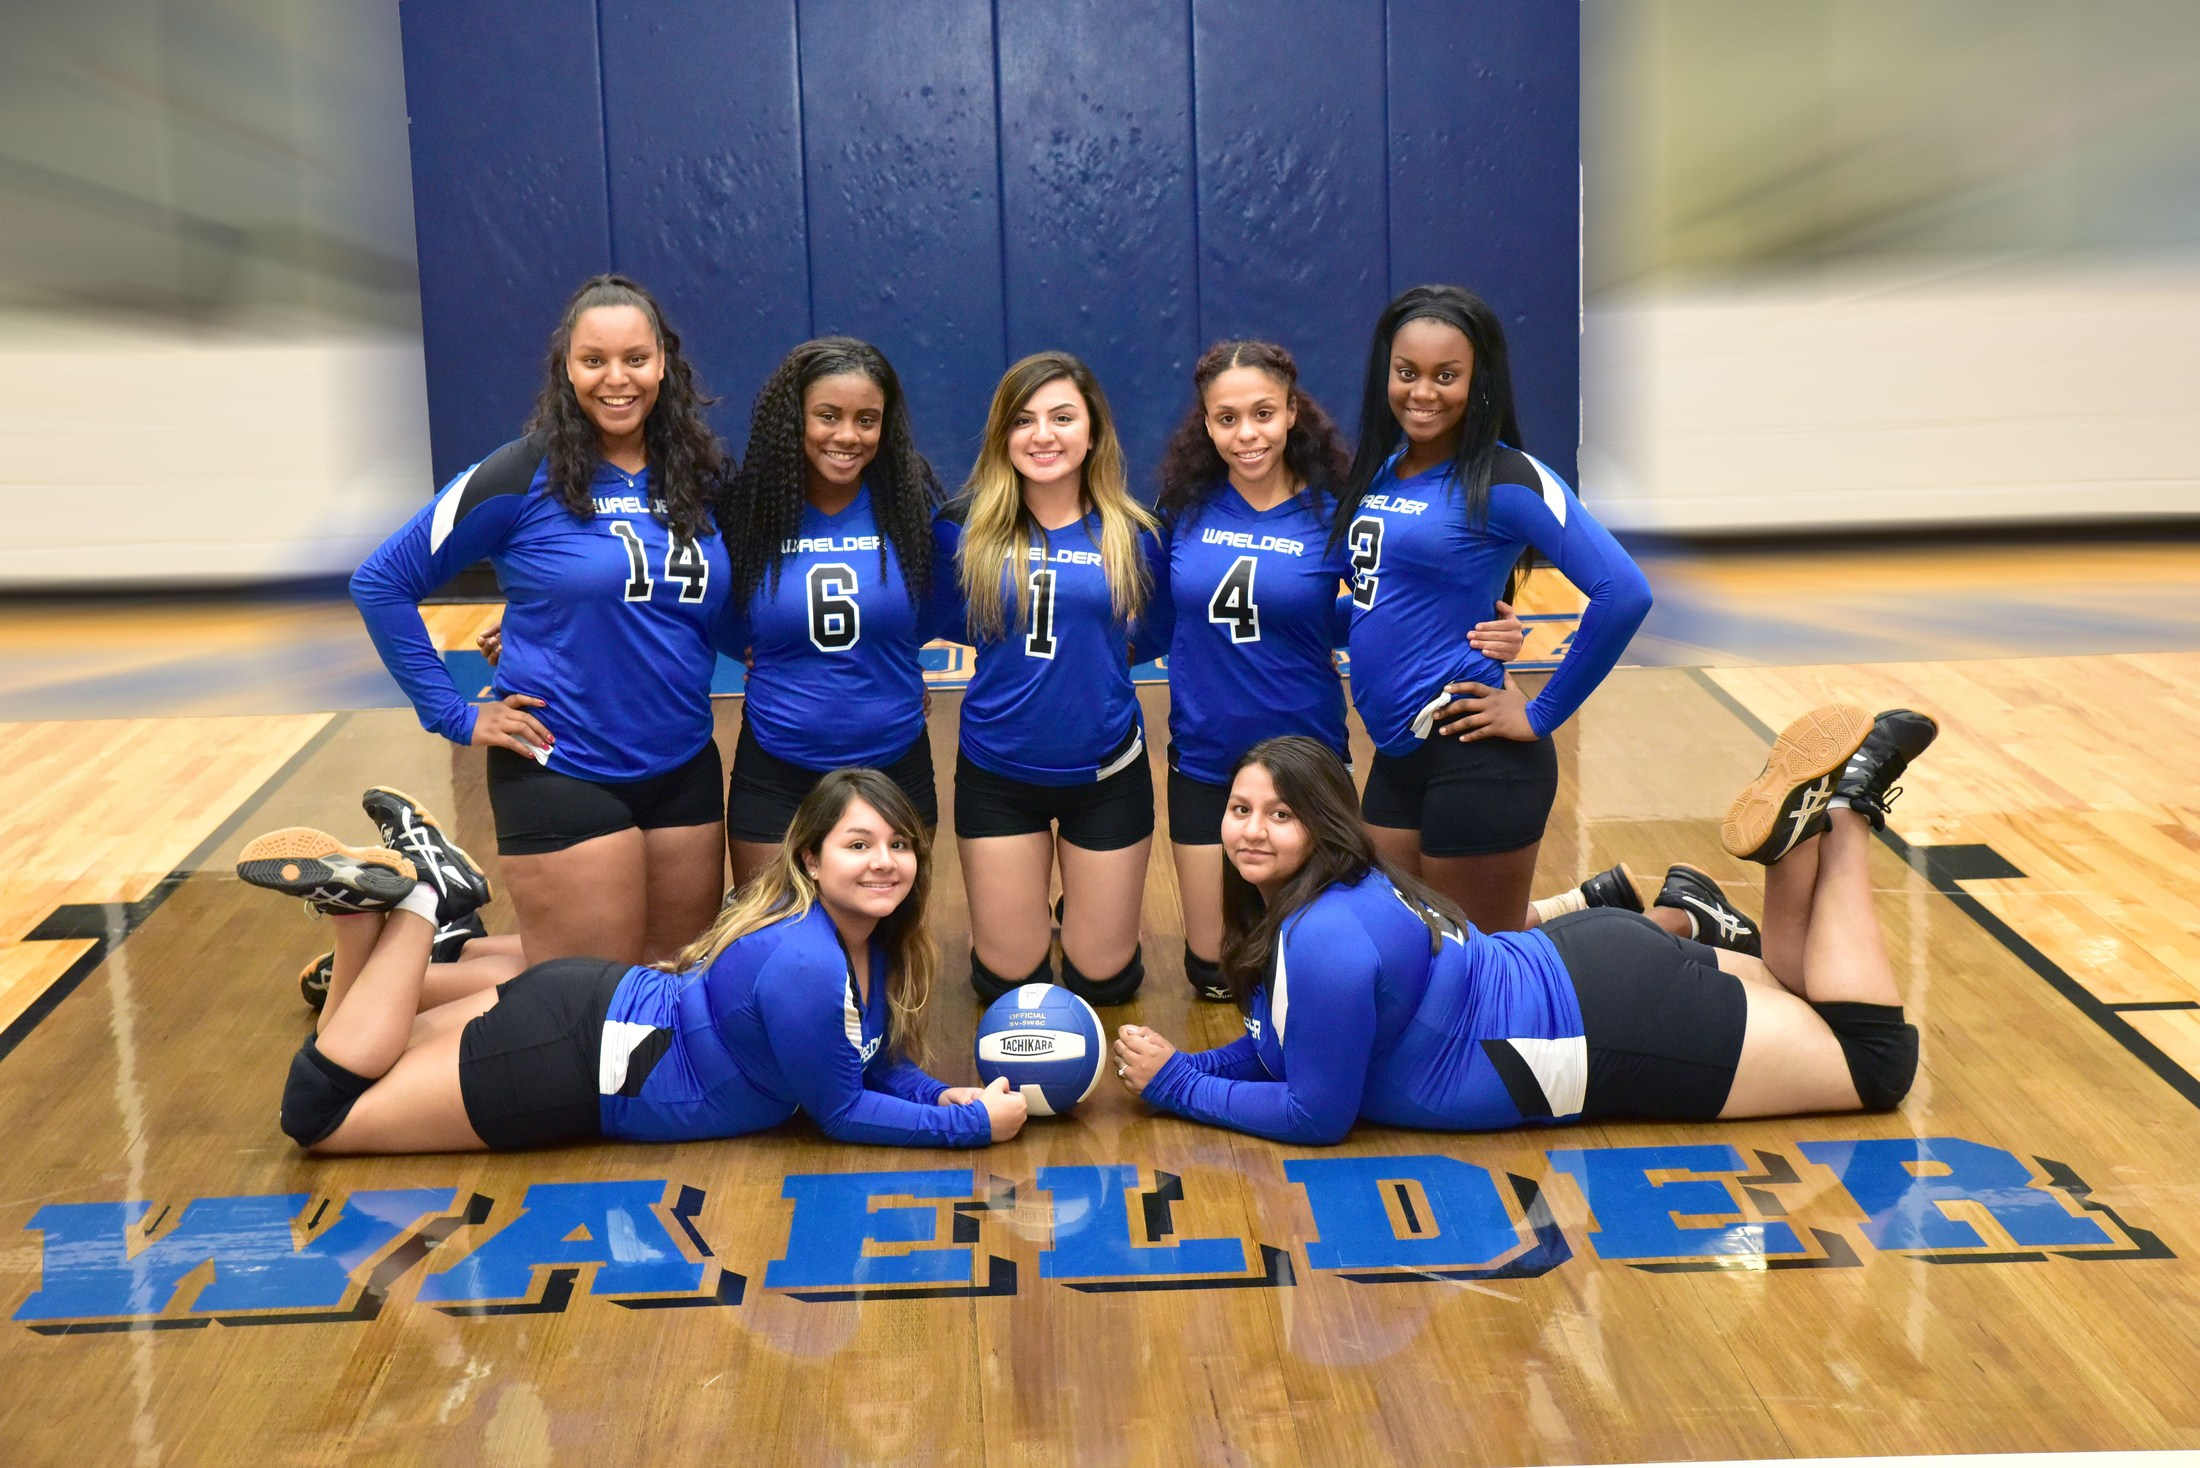 Girl Volleyball JV 2017 - 2018